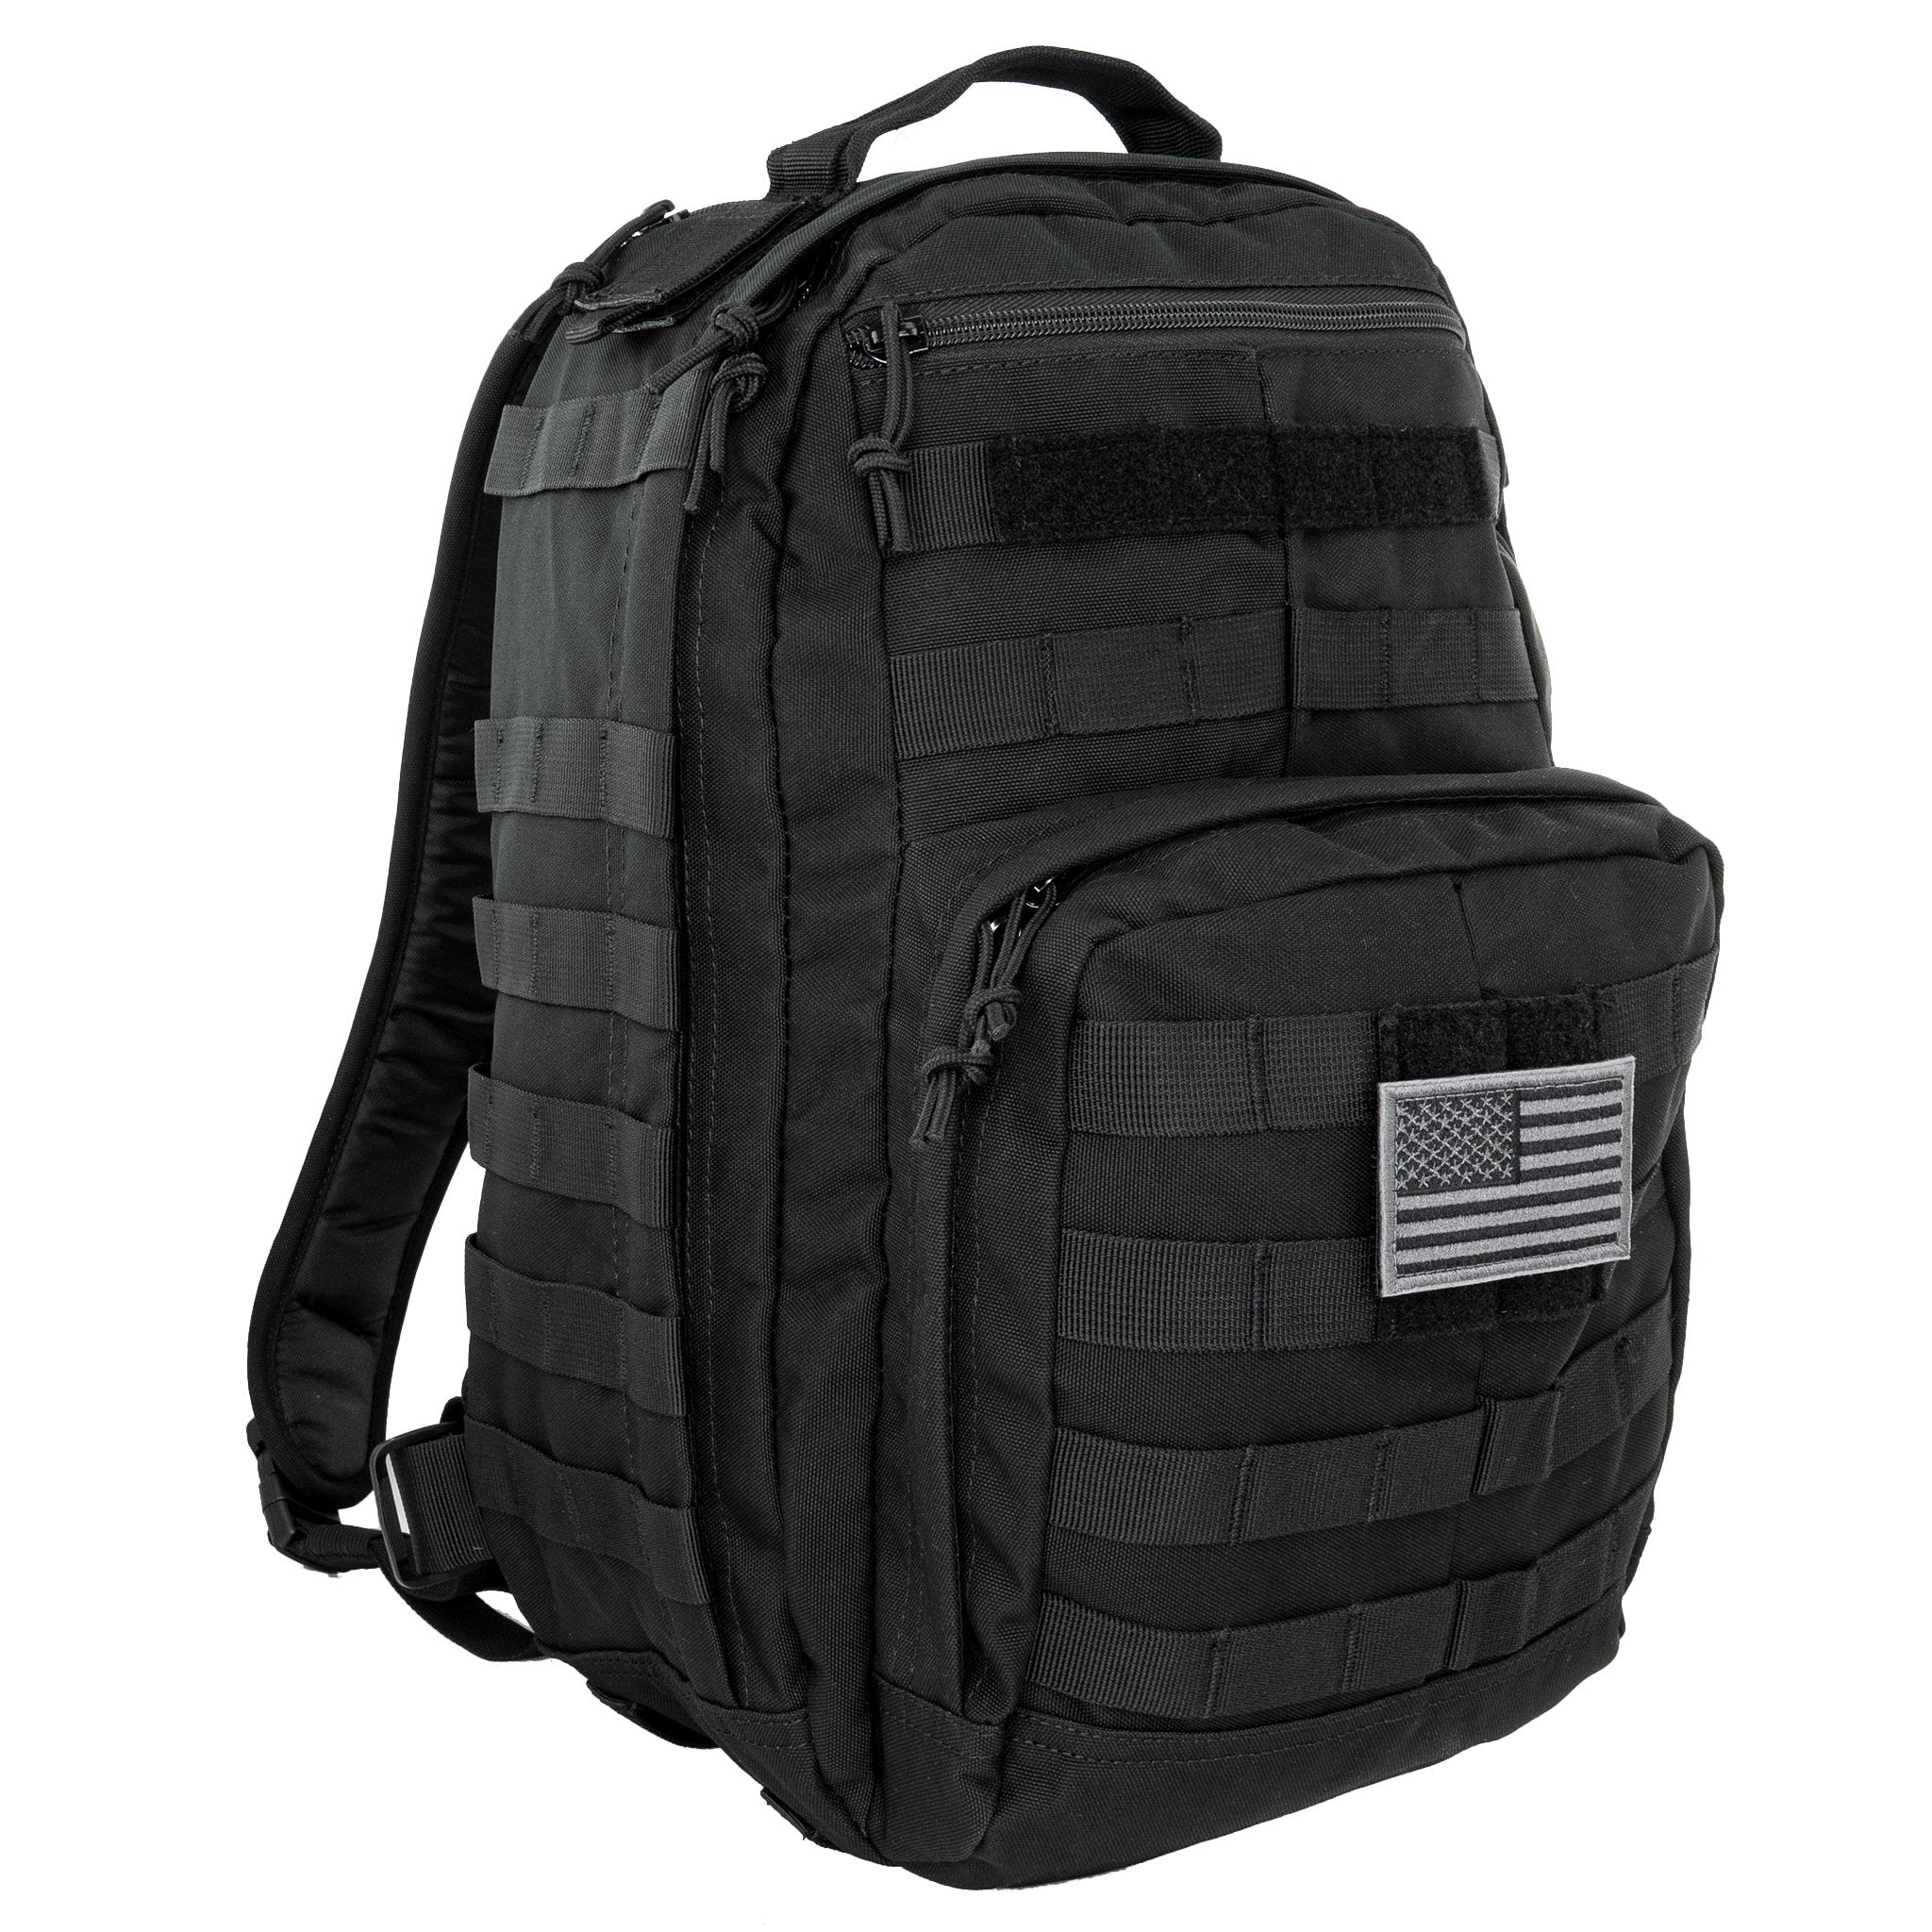 LINE2design Emergency Medical, Tactical Trauma Backpack, Molle System Backpack, Outdoor Day Pack